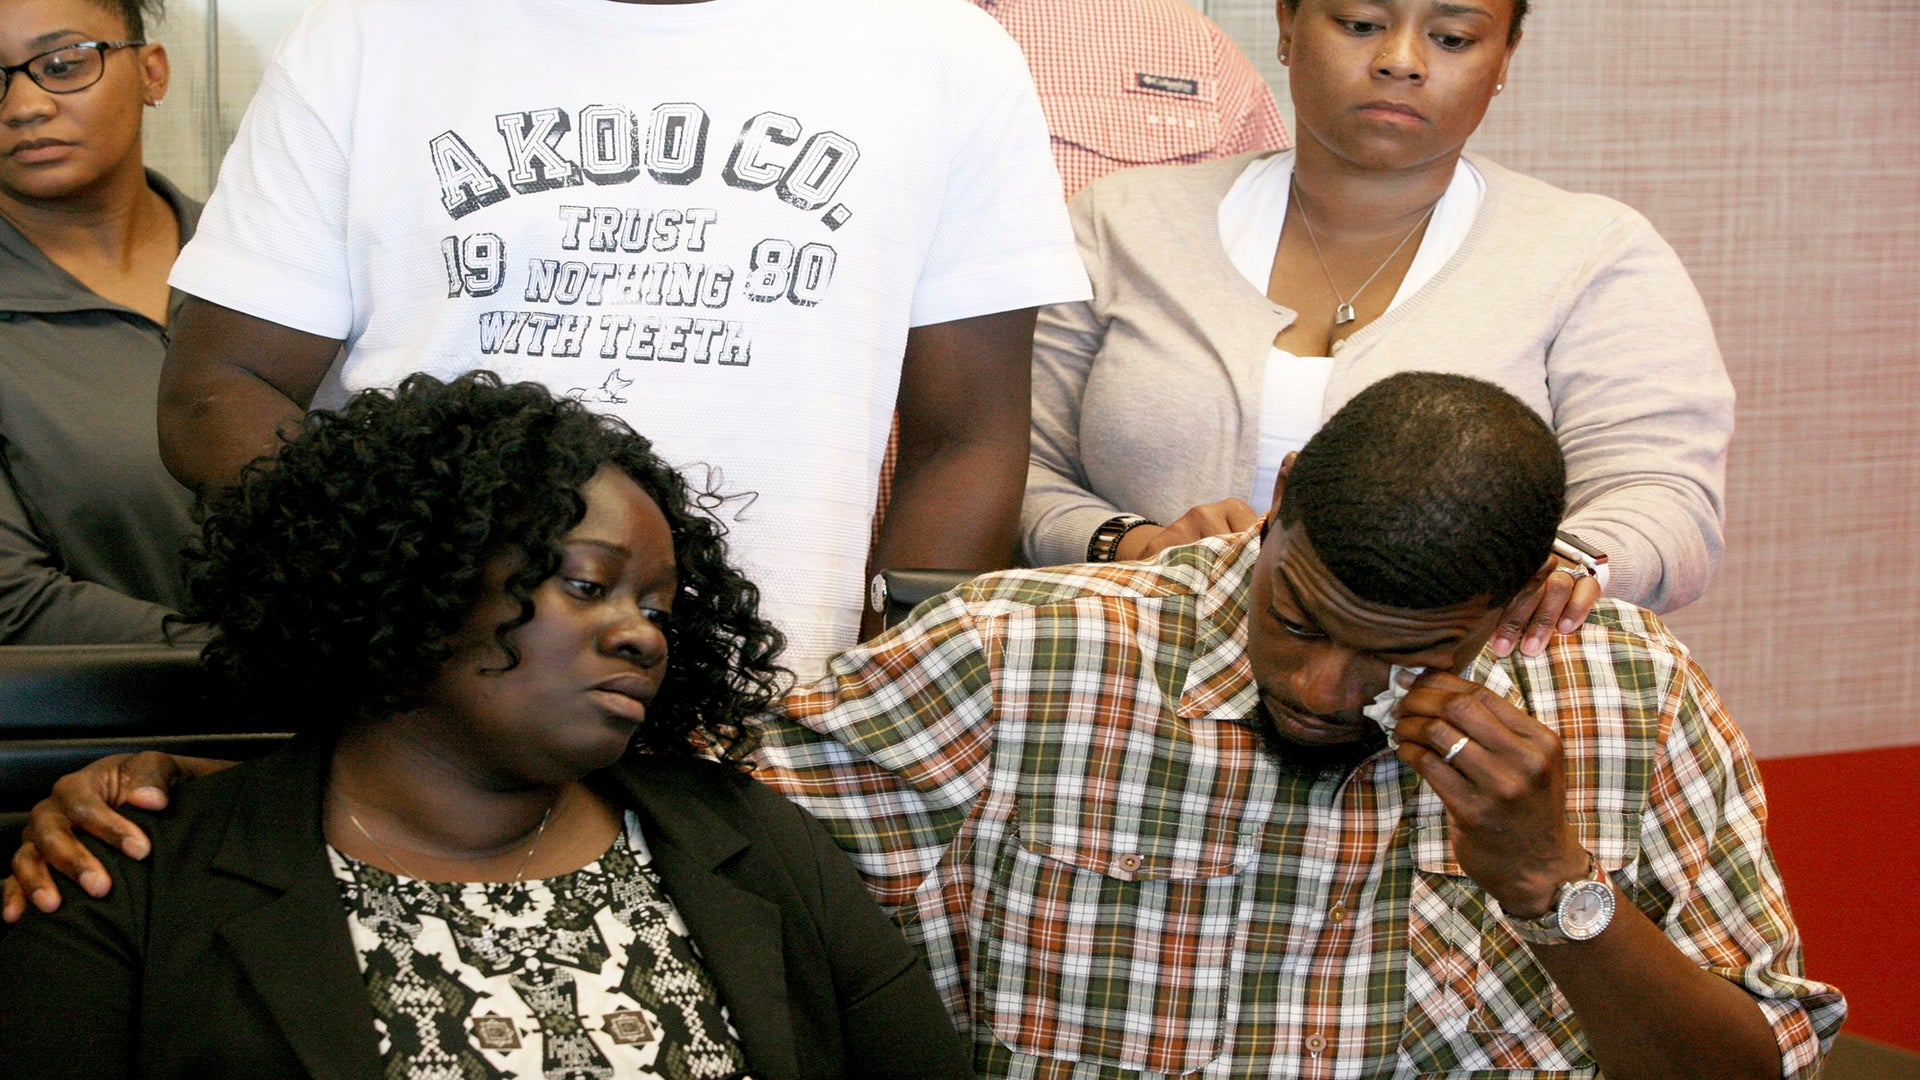 Police Chief Admits To Getting Key Detail Wrong In Fatal Shooting Of Black Teen In Texas